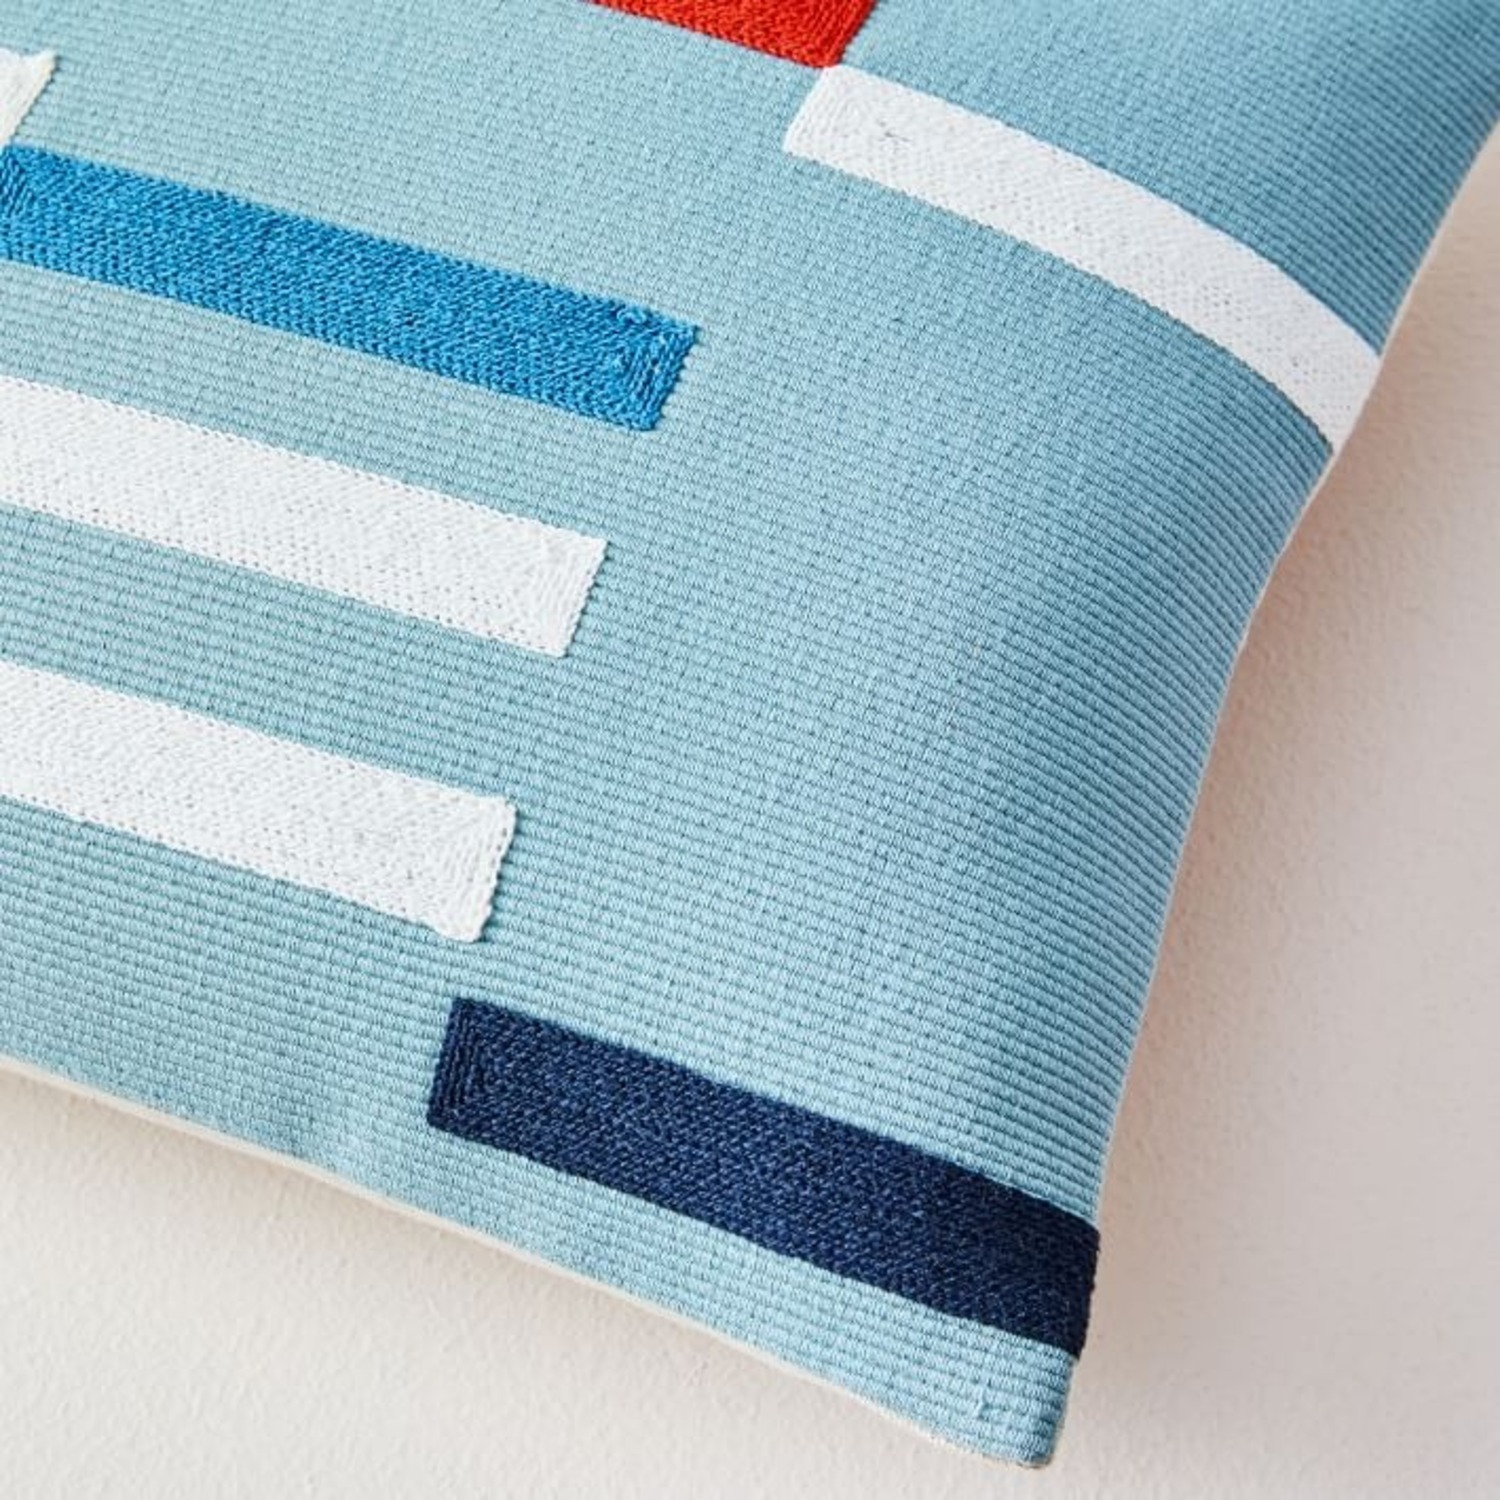 West Elm Margo Selby Staggered Stripe Pillow Cover - image-2